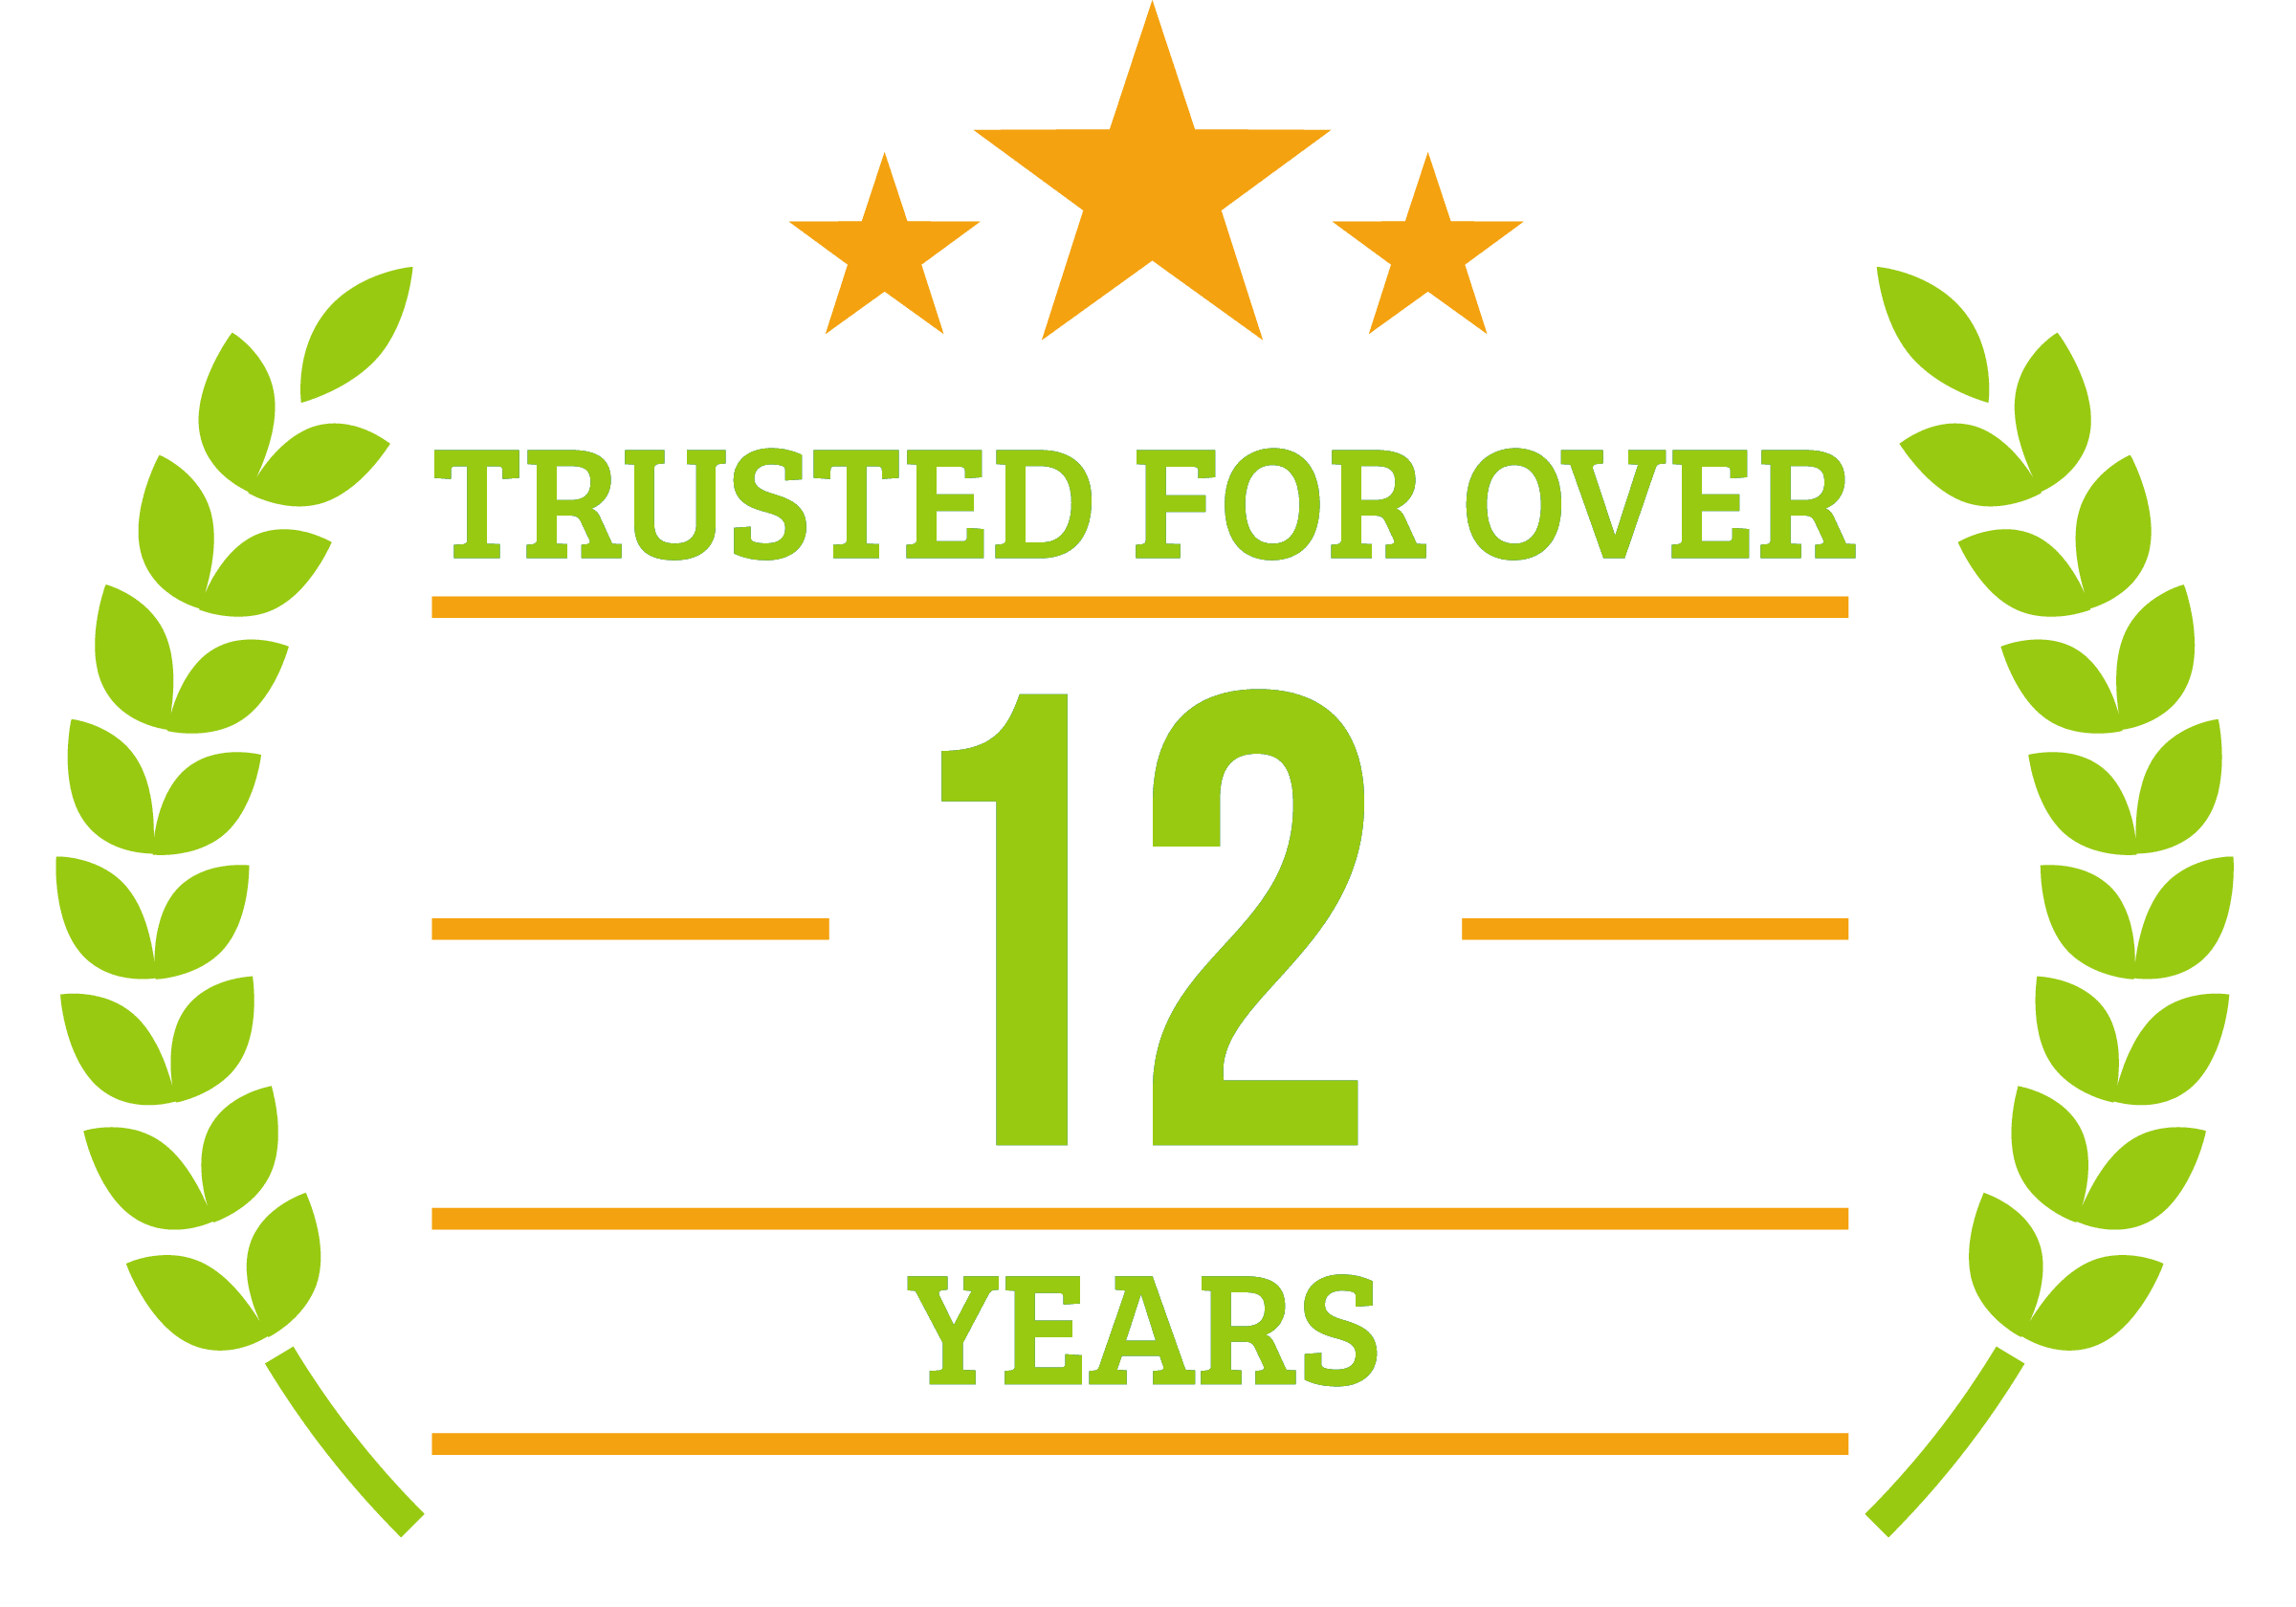 12 Years of Trusted Service badge